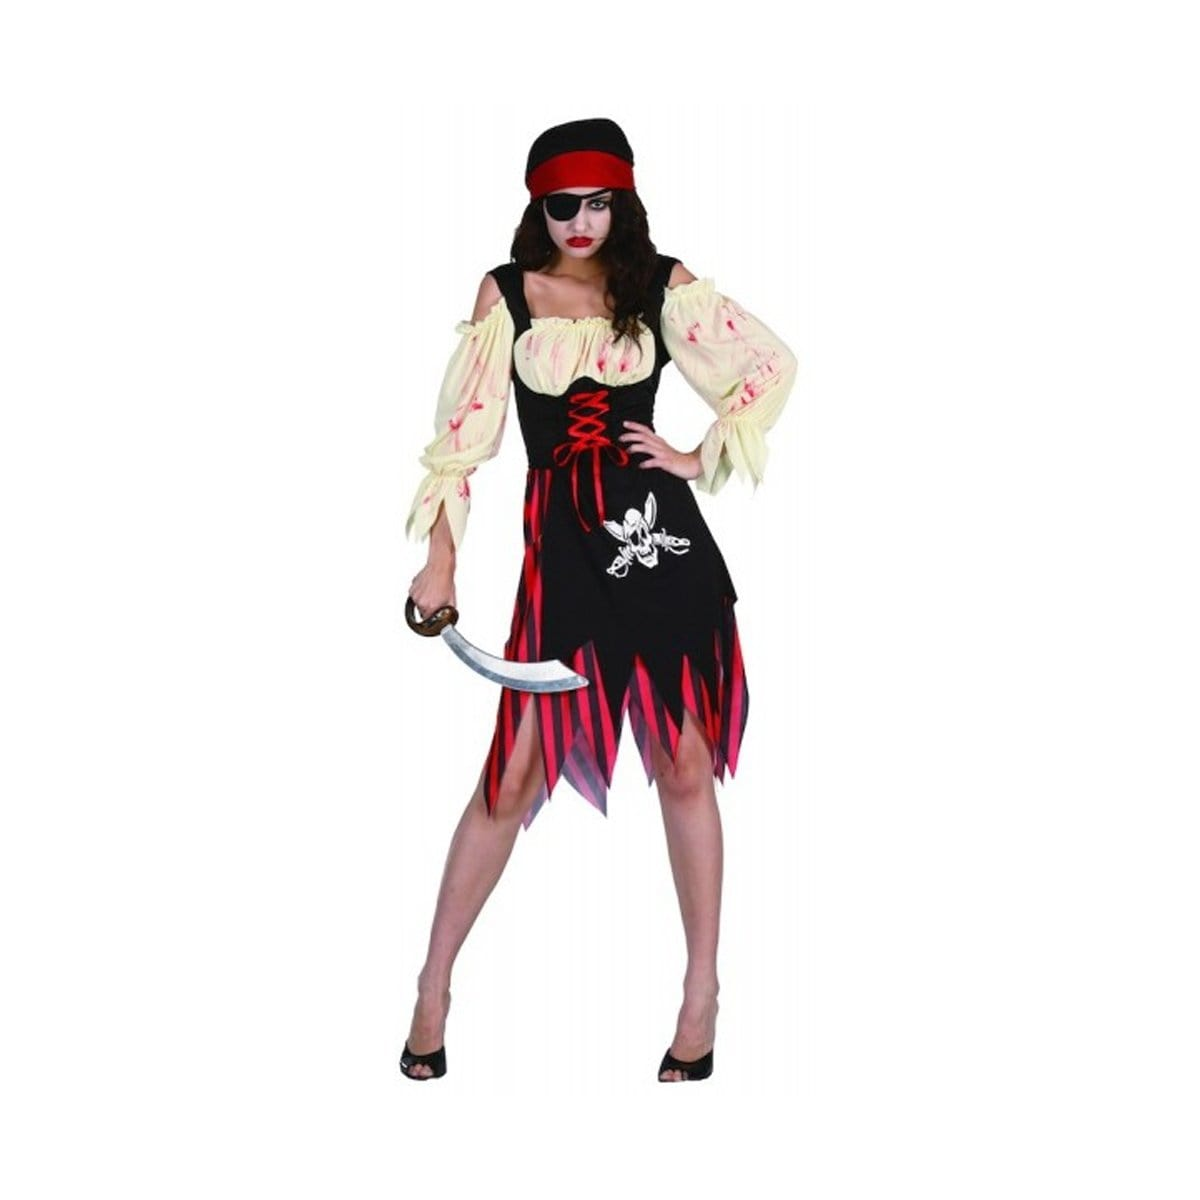 COSTUME WICKED PIRATE LADIES - Christmas World